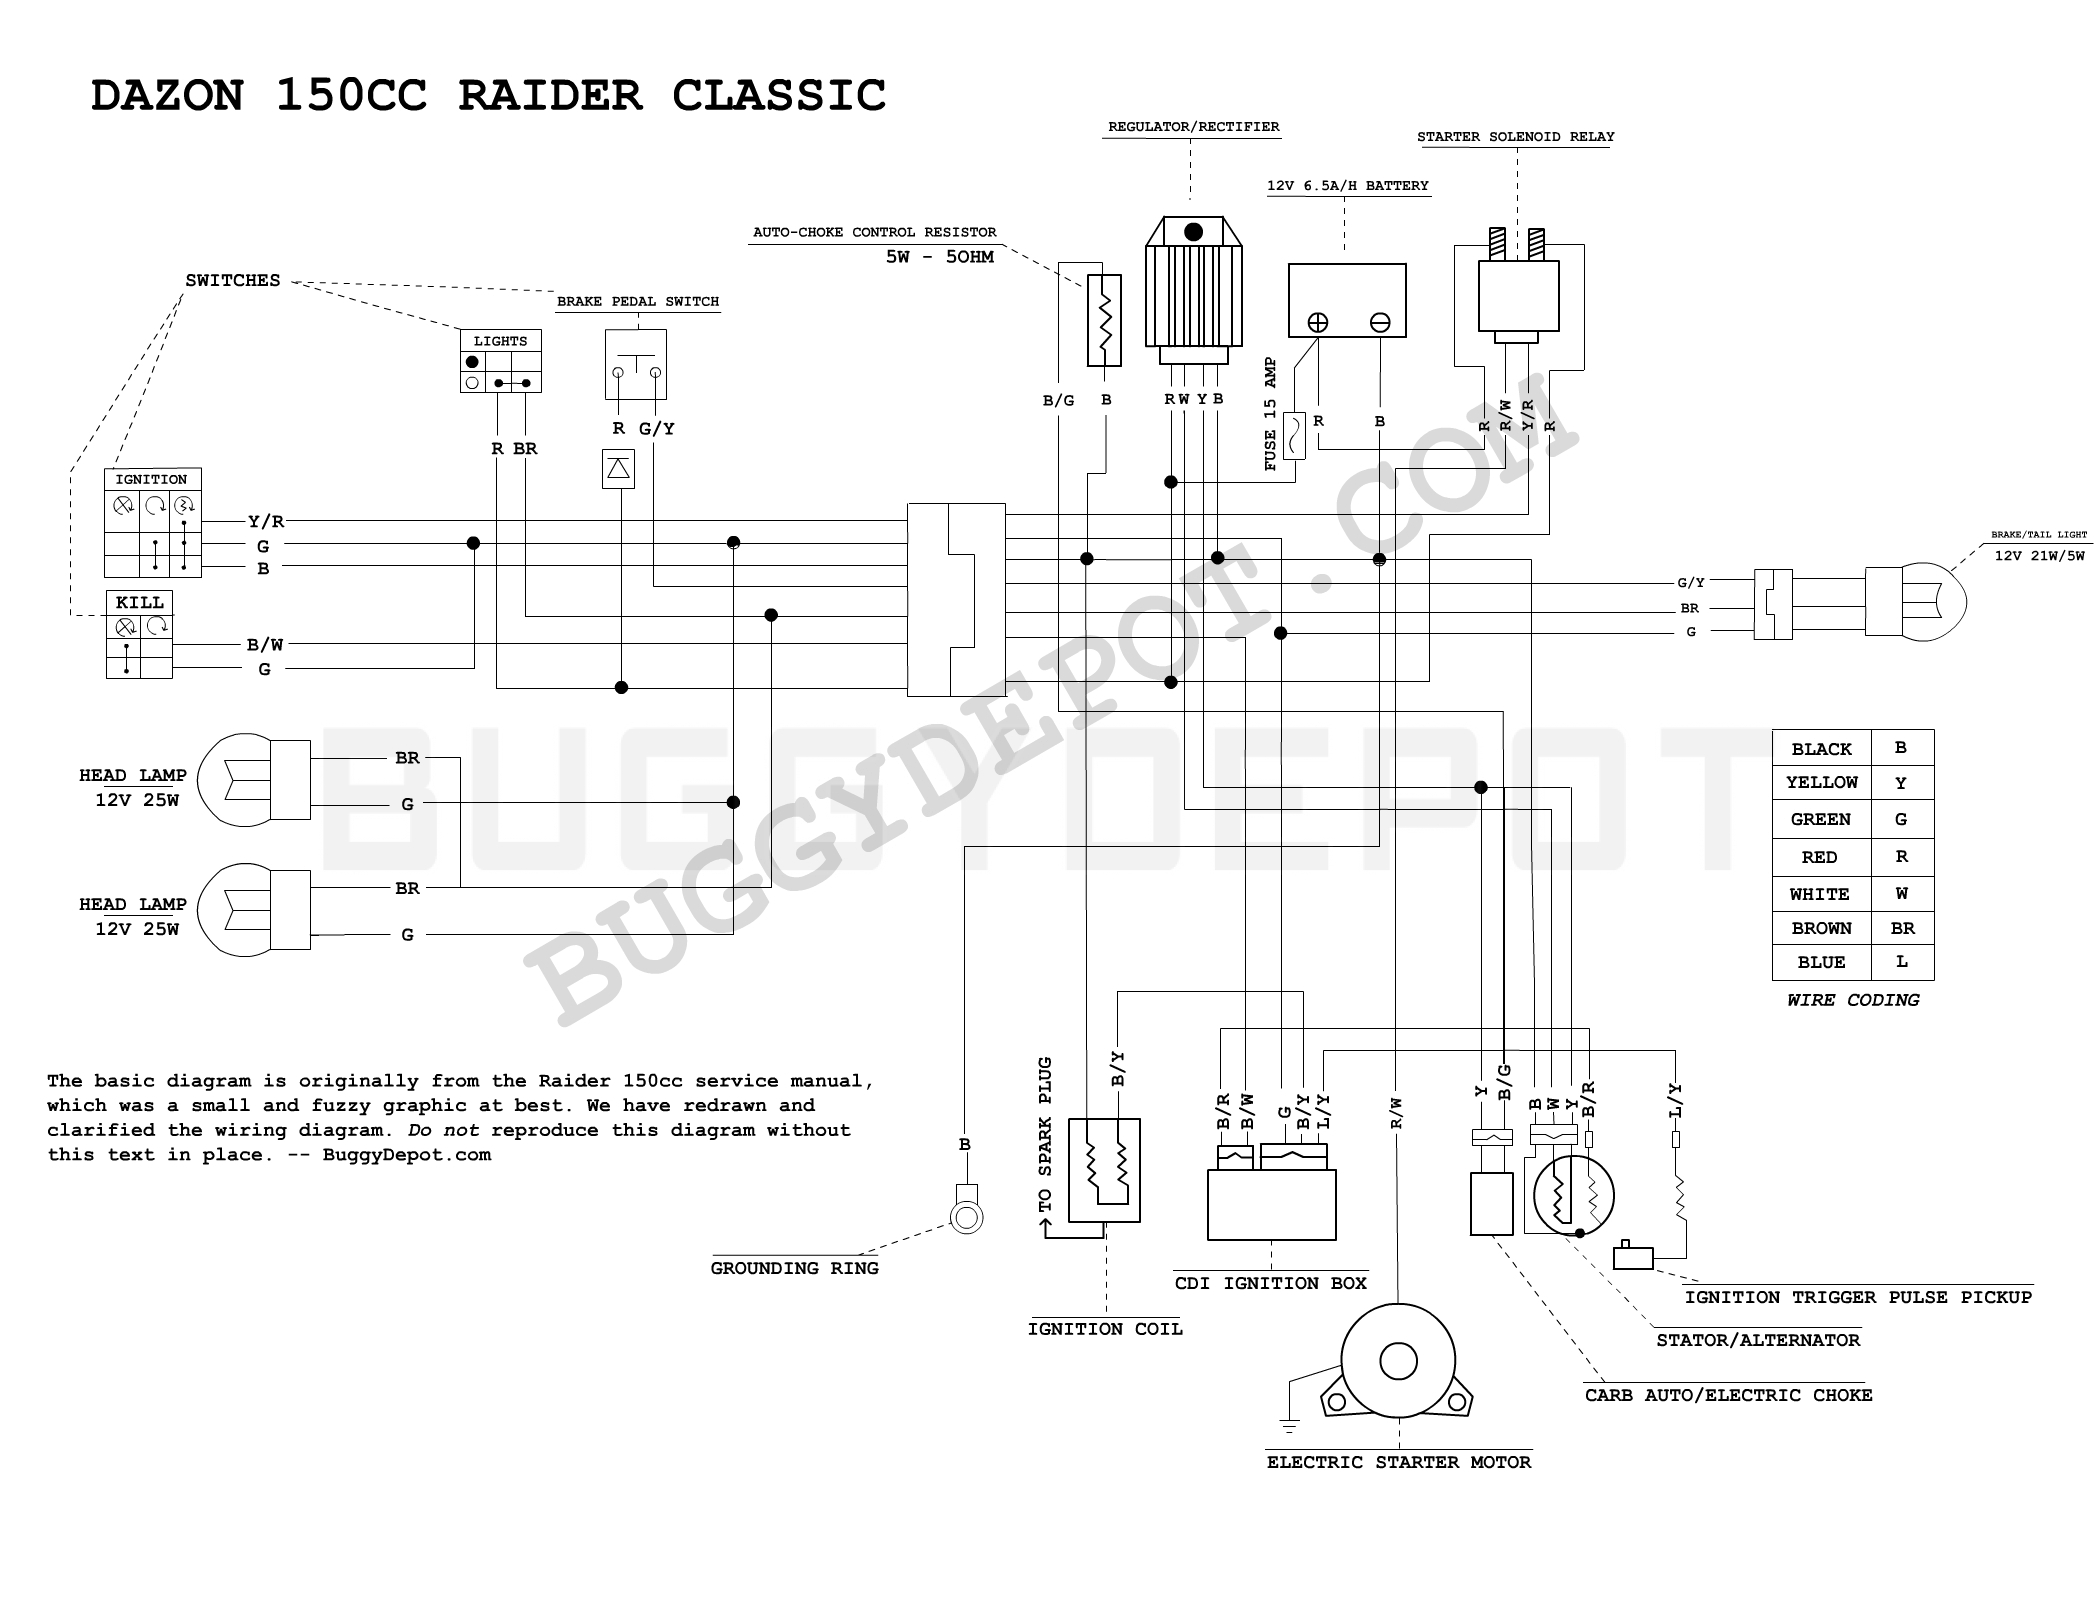 Chinese go kart wiring diagram data wiring diagrams dazon raider classic wiring diagram buggy depot technical center rh buggydepot com chinese go kart wiring diagram 110 lifan 250cc wiring diagram cheapraybanclubmaster Gallery